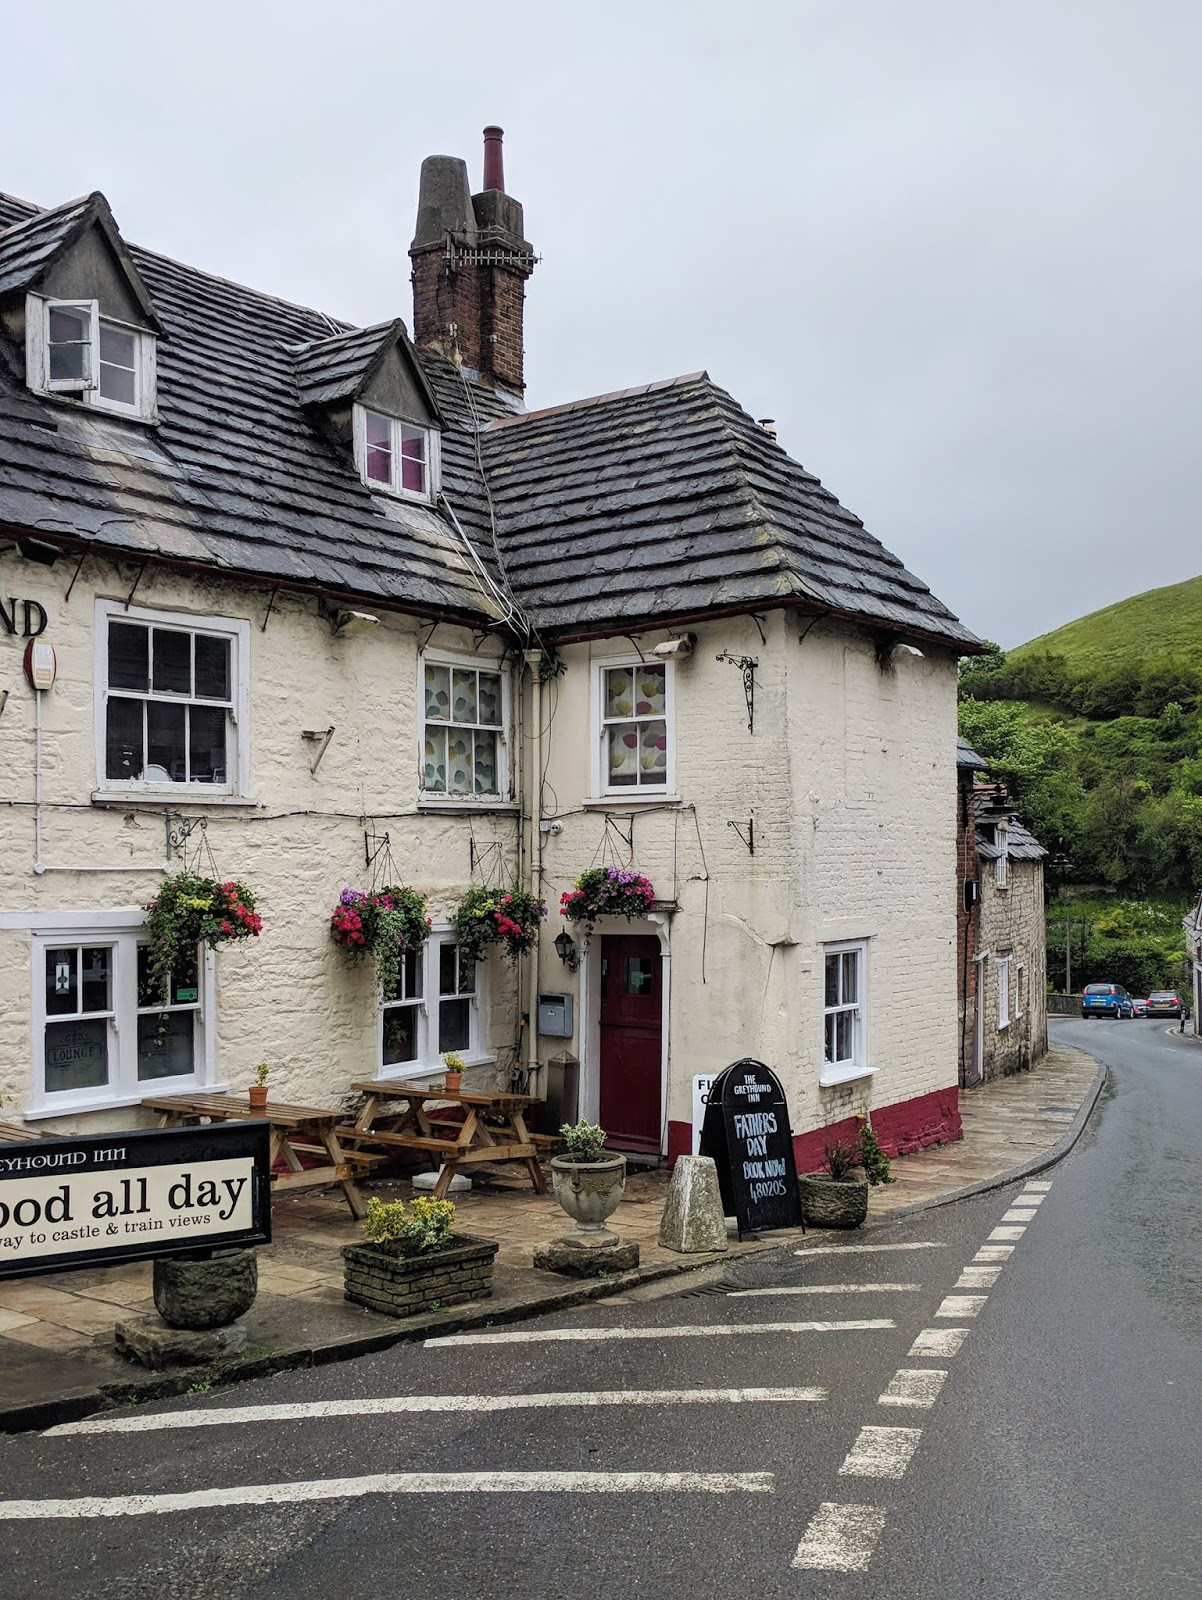 a charming pub in Corfe Castle with hanging plants against a white exterior